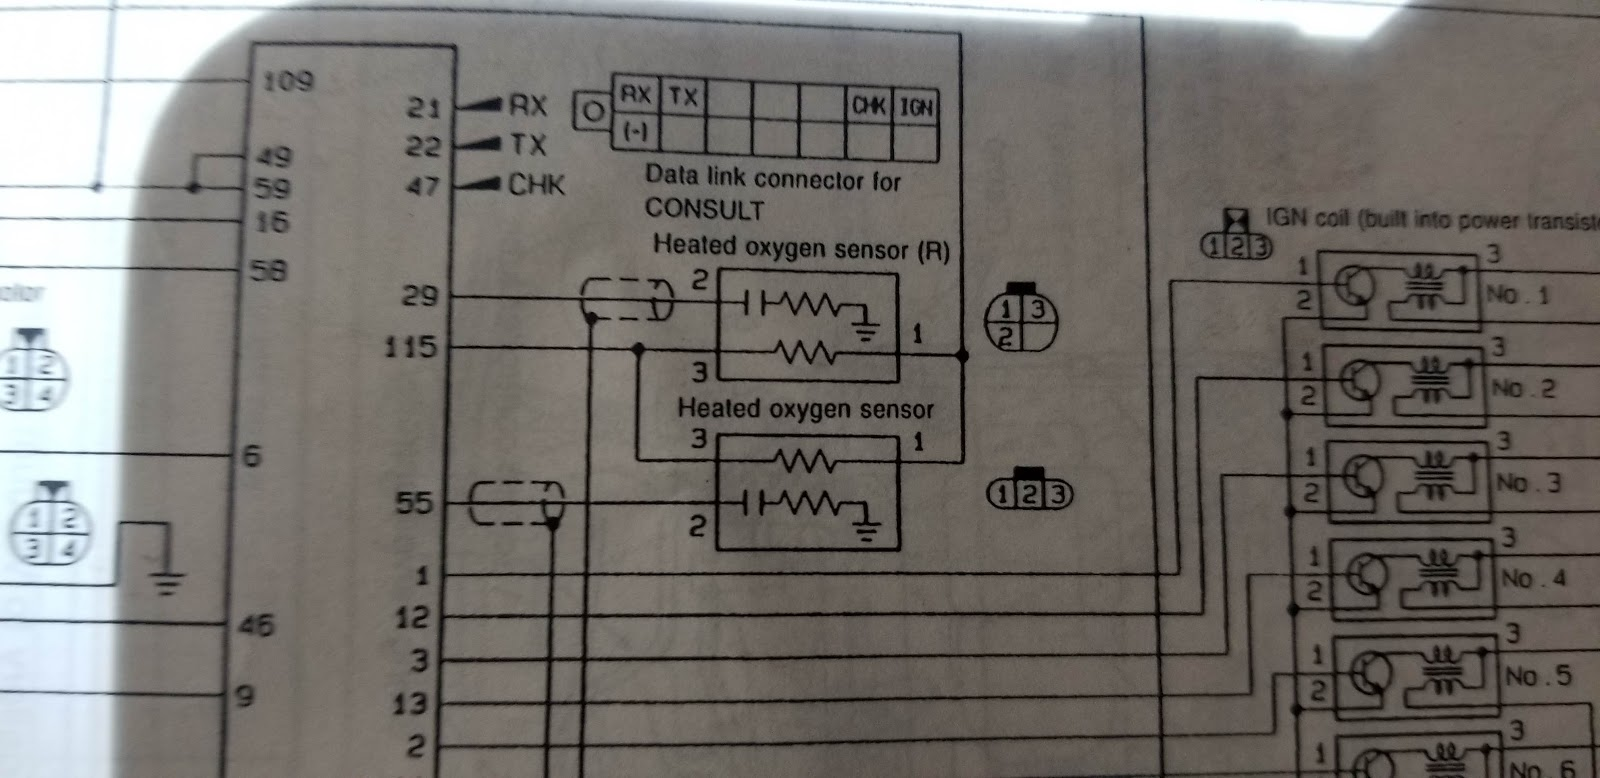 medium resolution of r33 r34 oxygen sensor wiring with pin out the flat plug wiring is the same the square plug wiring is not